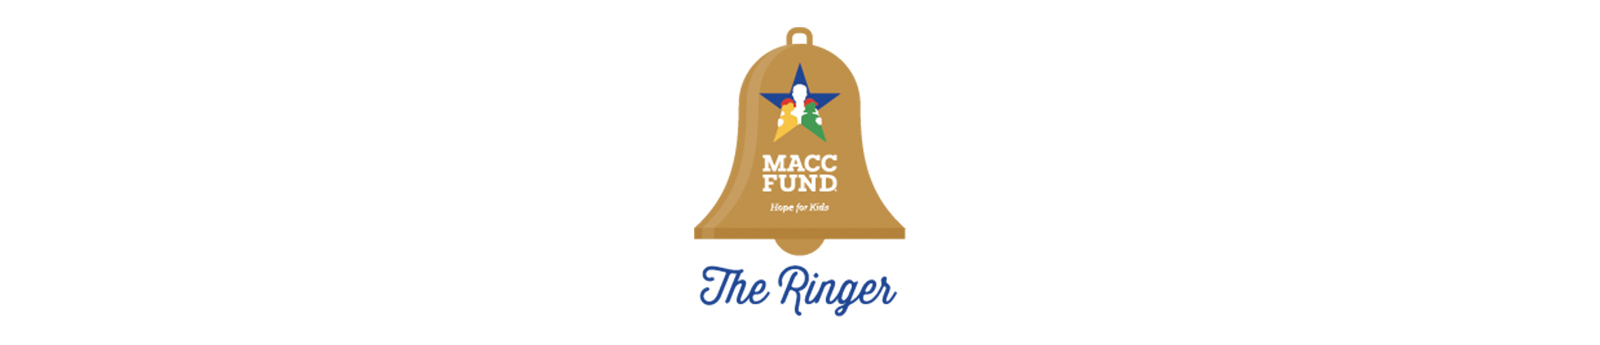 MACC Fund - The Ringer